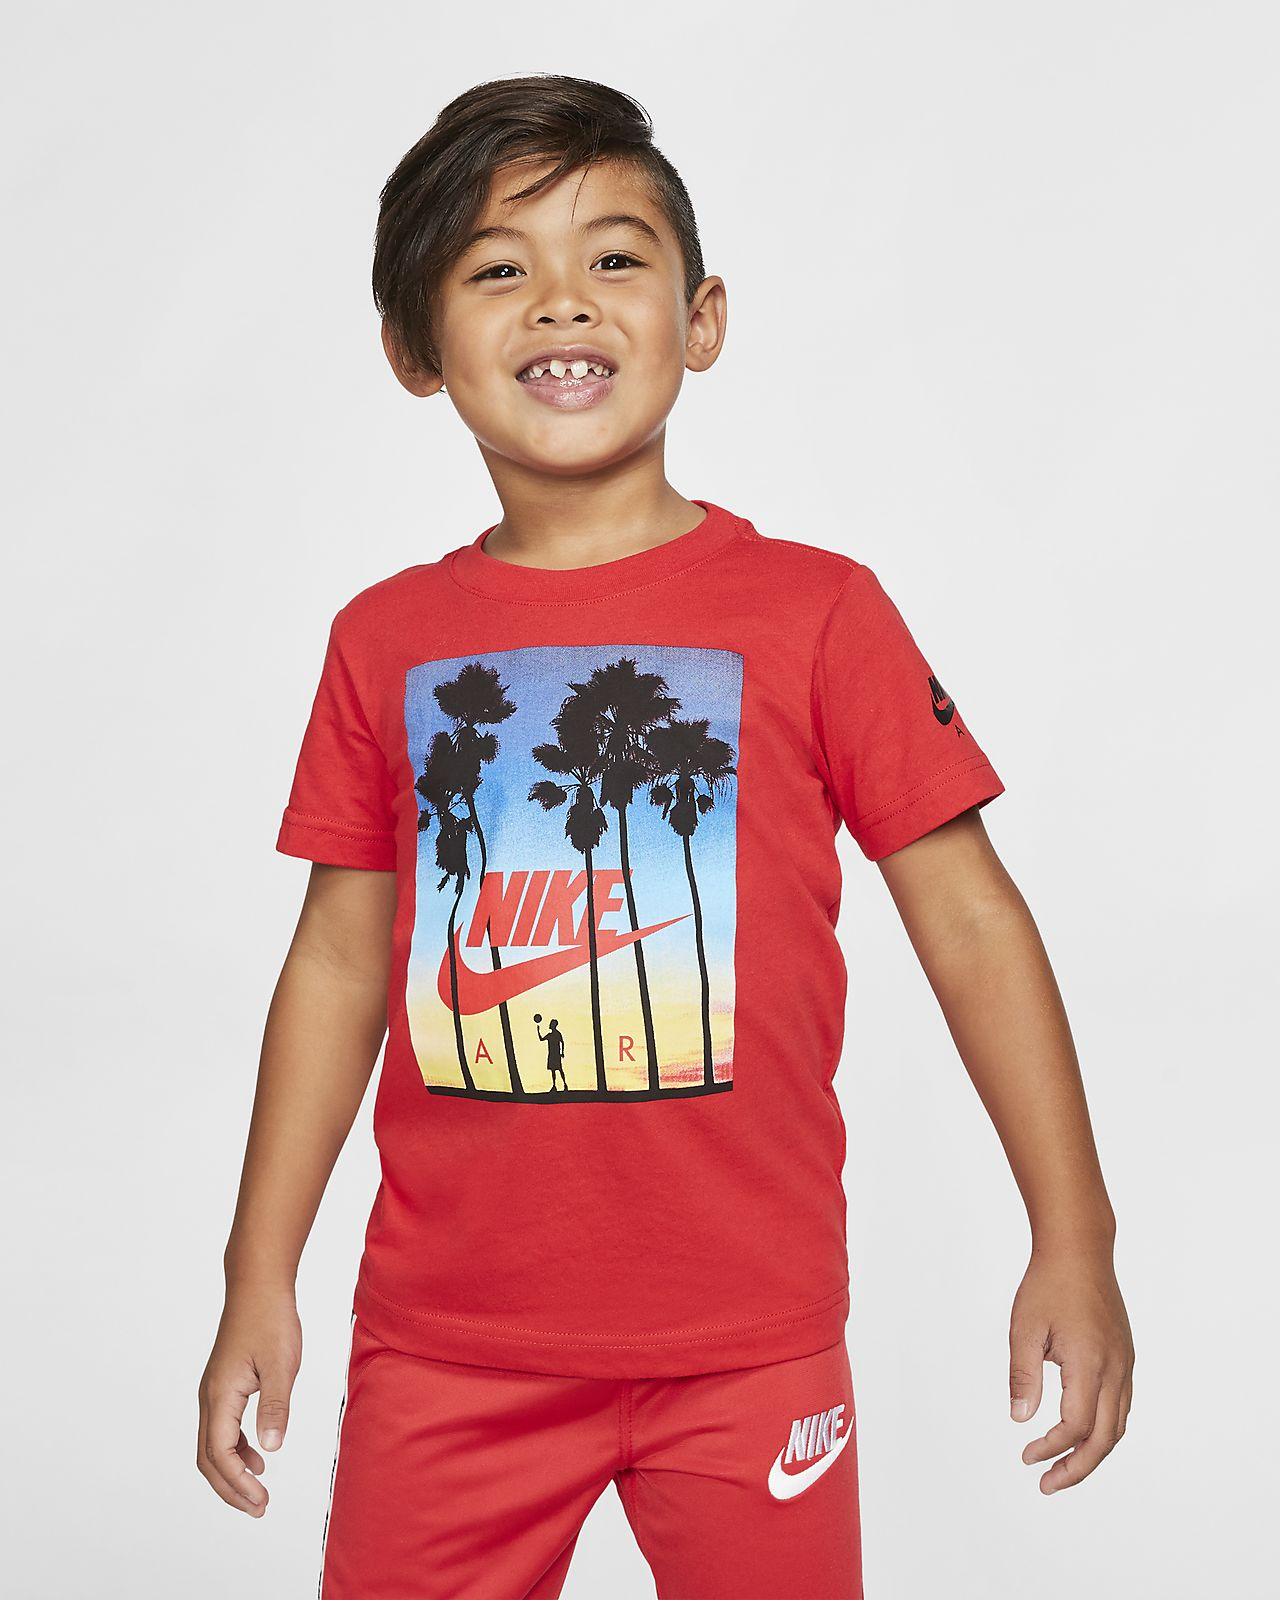 Nike Air Younger Kids' Short-Sleeve T-Shirt